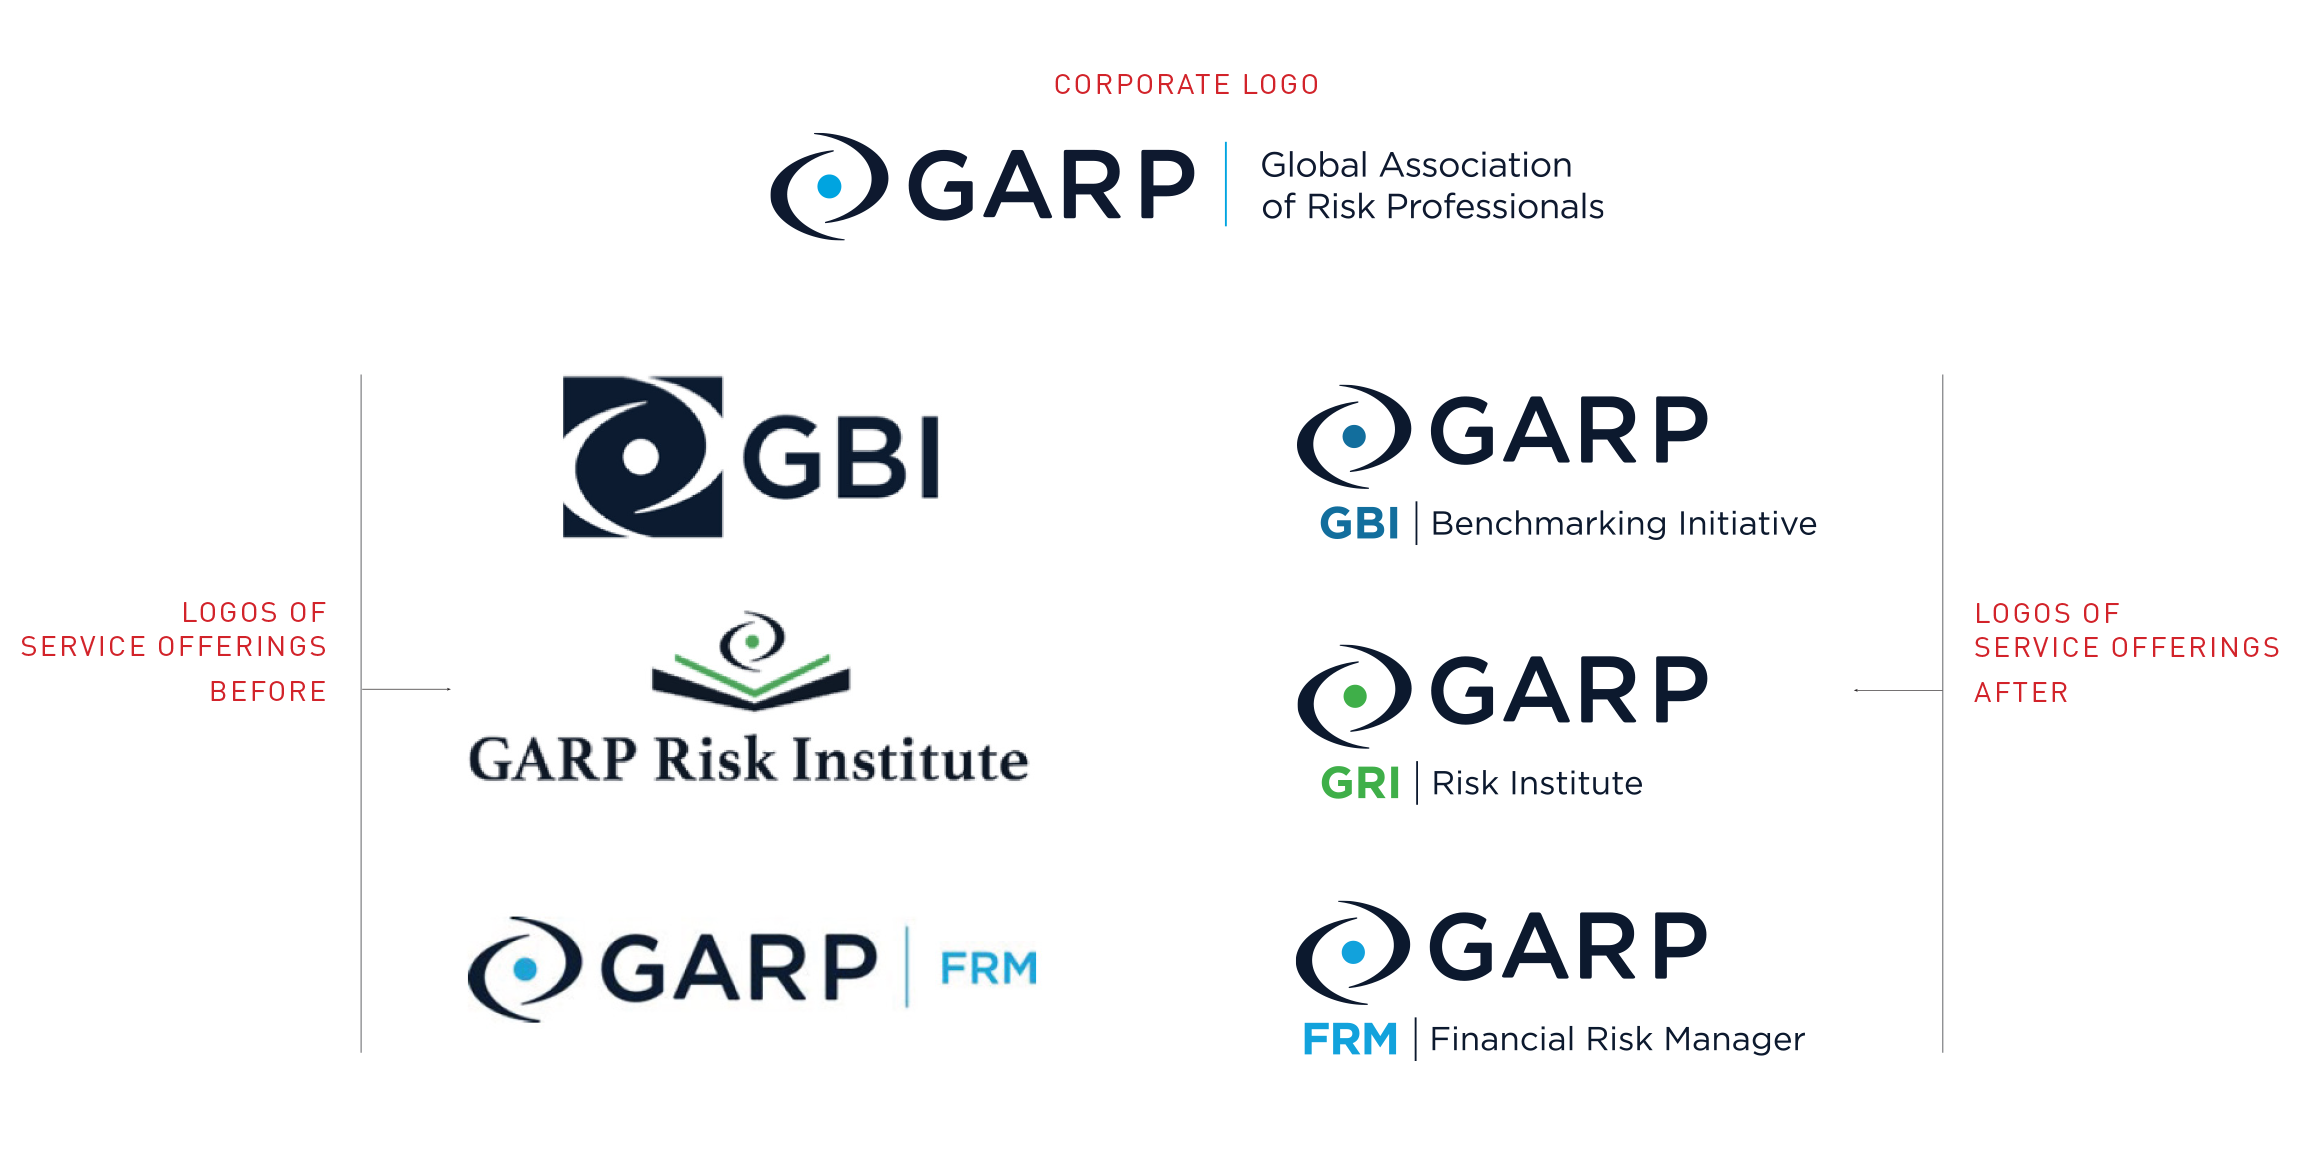 Global-Association-of-Risk-Professionals-(GARP)-creating-a-family-of-brands